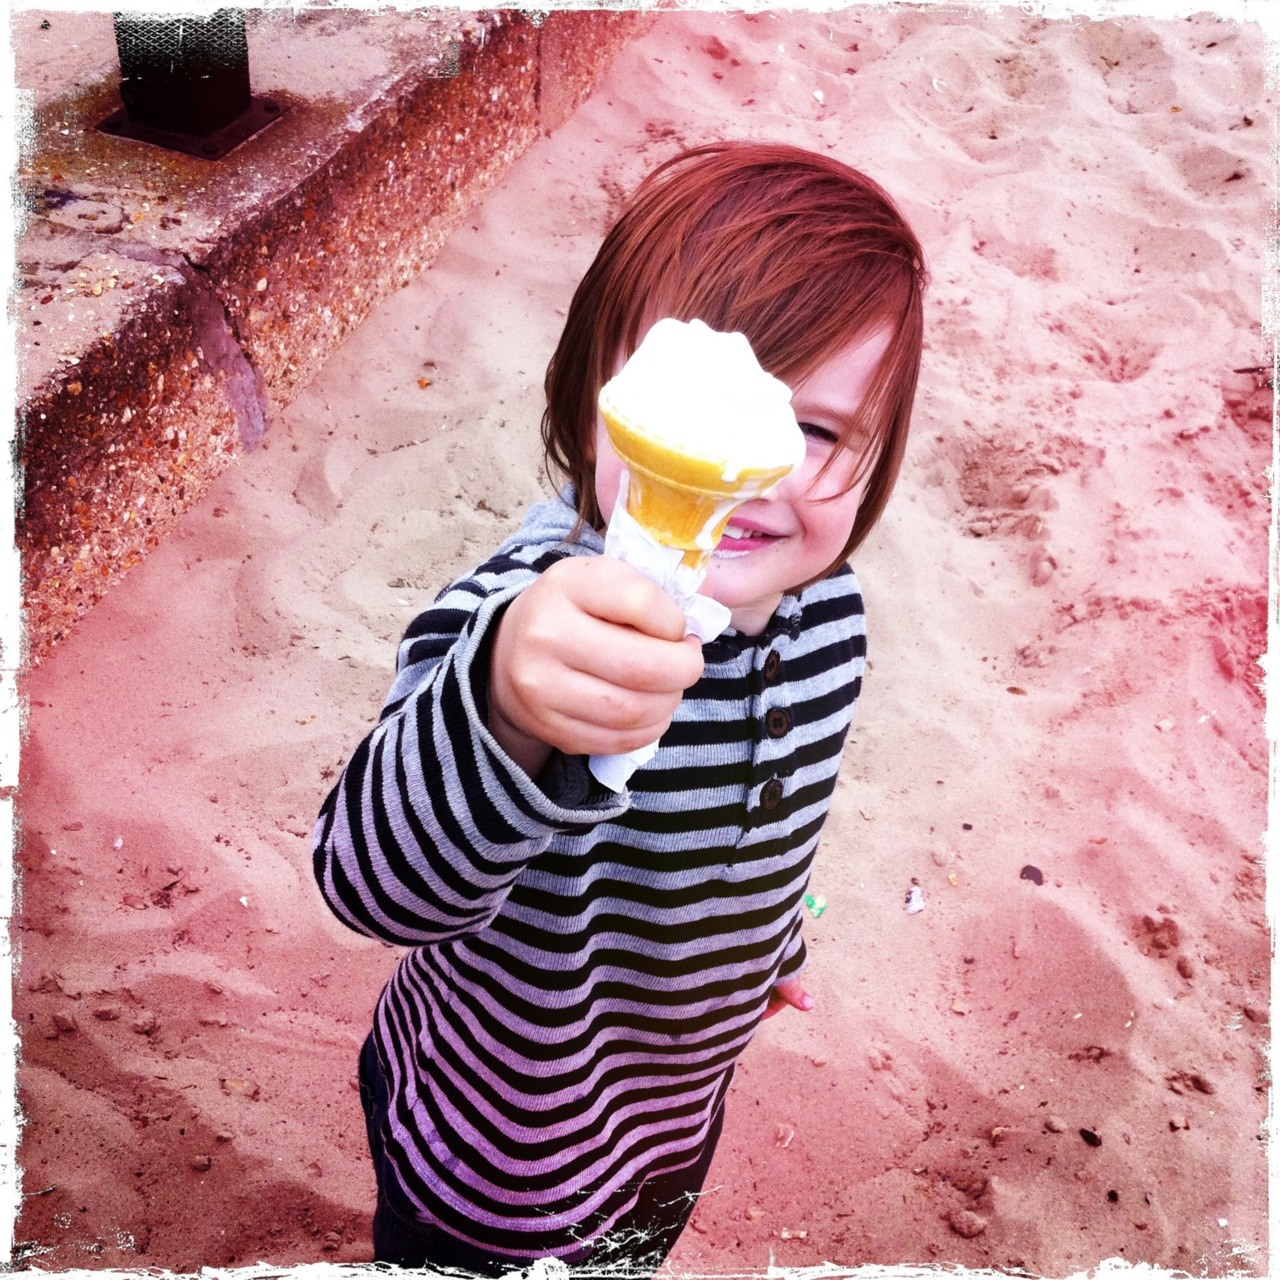 Ice-cream Hipsta    Another Friii-day rolls around and brings with it the start of the Easter holidays. In deference to the beautiful weather we've had here this week, and with just a little bit of cautious optimism that it will continue for a bit longer, here's how I hope we'll be spending next week; having fun in the sun and eating (rapidly melting) ice-cream. Have a good one : )